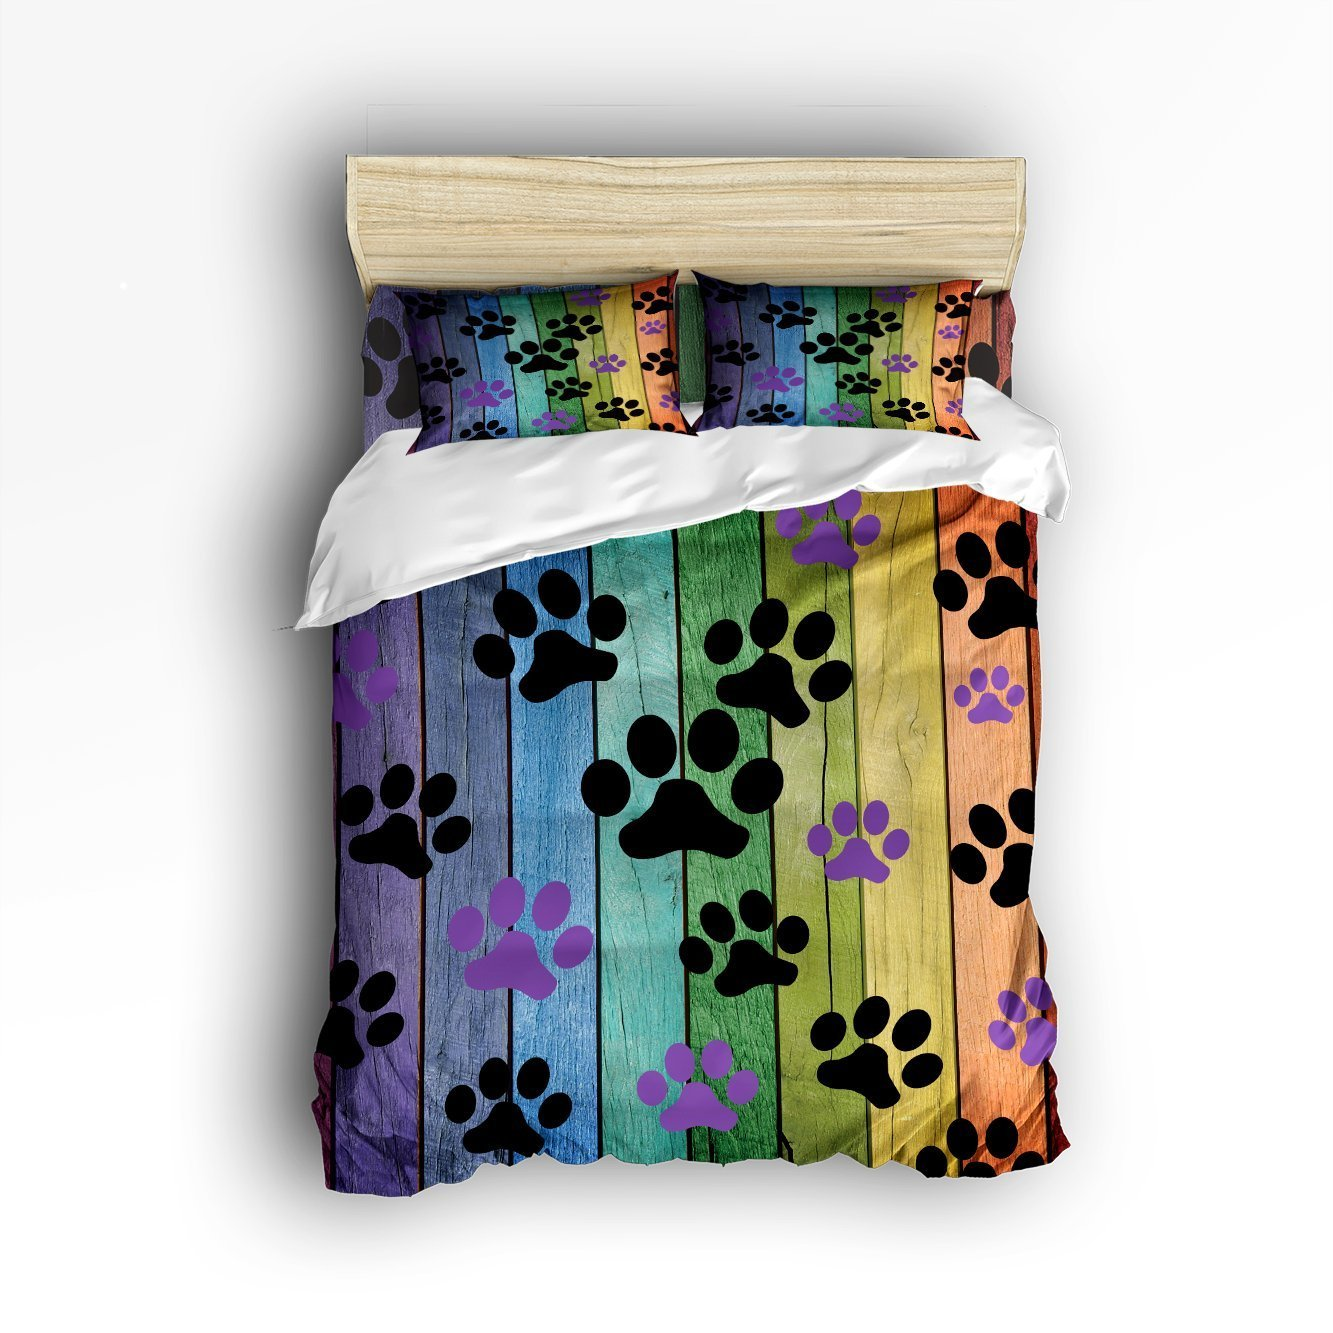 4 Pieces Bedding bed Set Comfortable Soft Brushed Cotton, Dog Paw Prints Rustic Old Barn Wood Bed Sheet Set Duvet Cover Flat Sheet and Pillow CasesTwin Size by LovingIn (Image #1)